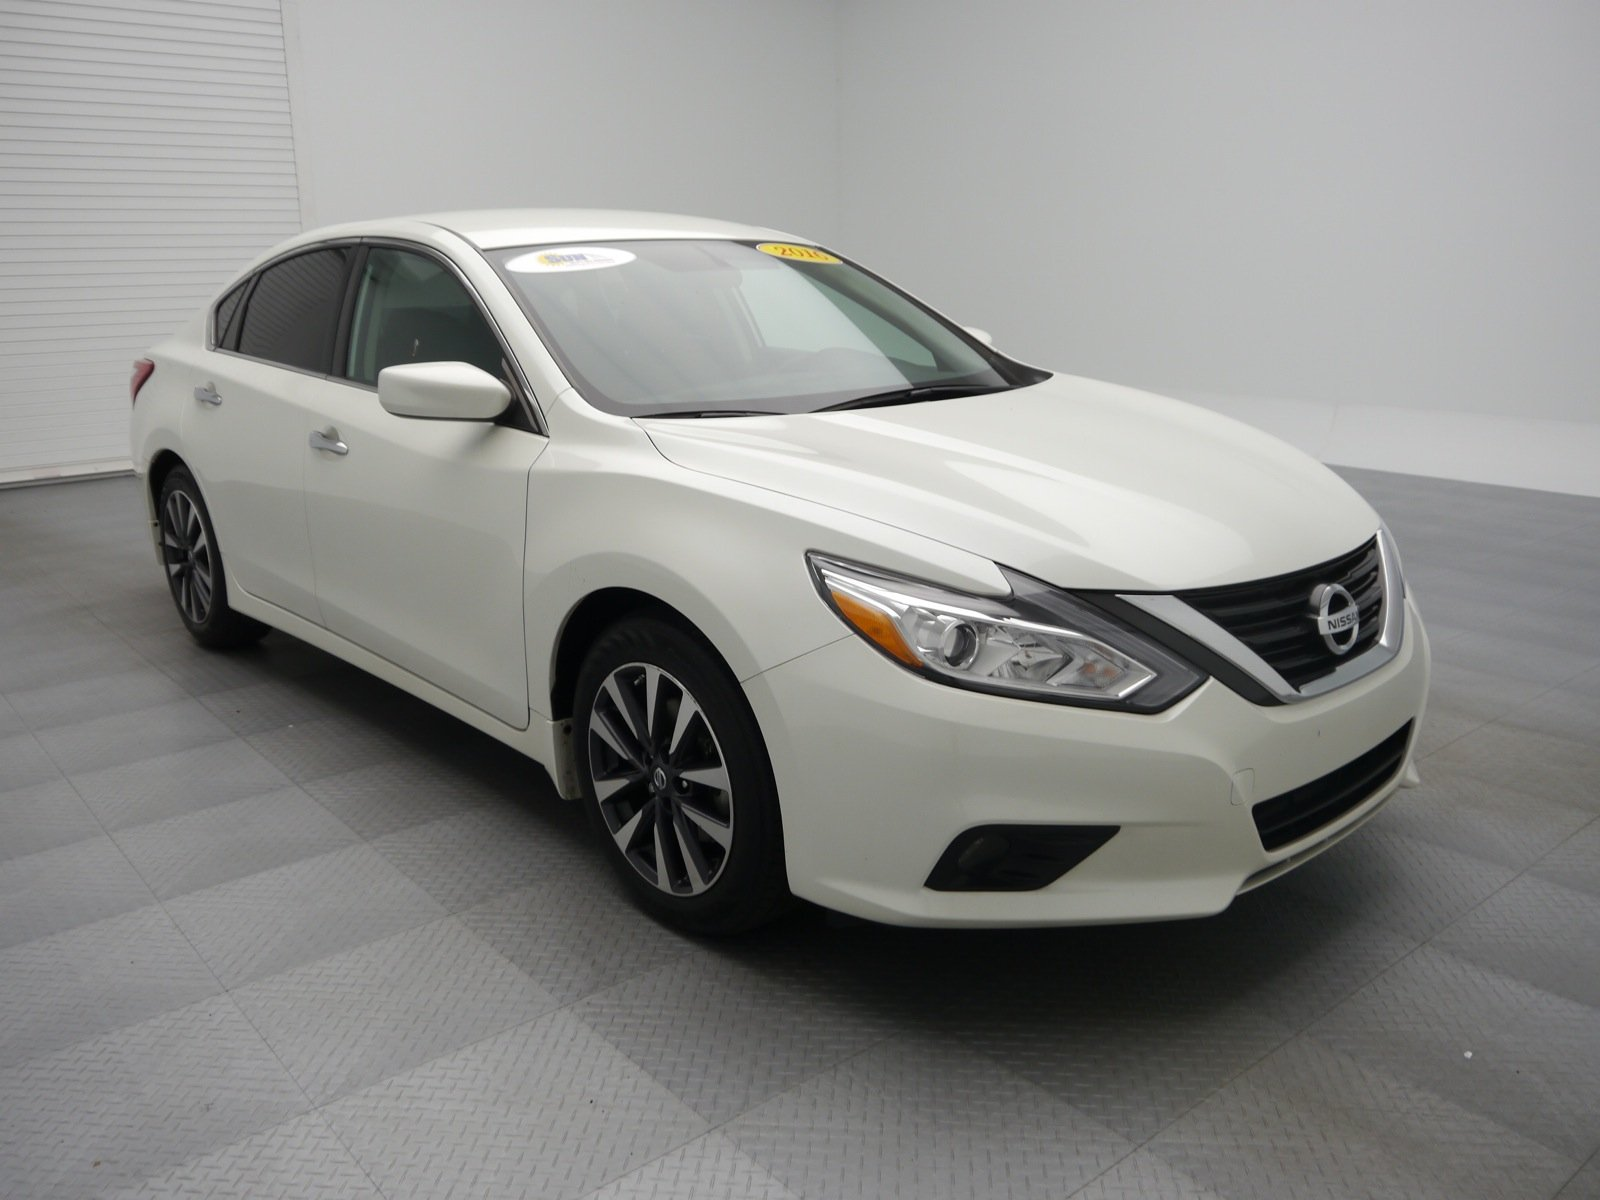 pre owned 2016 nissan altima 2 5 sv 4dr car cicero w31223 cicero ny used car king. Black Bedroom Furniture Sets. Home Design Ideas